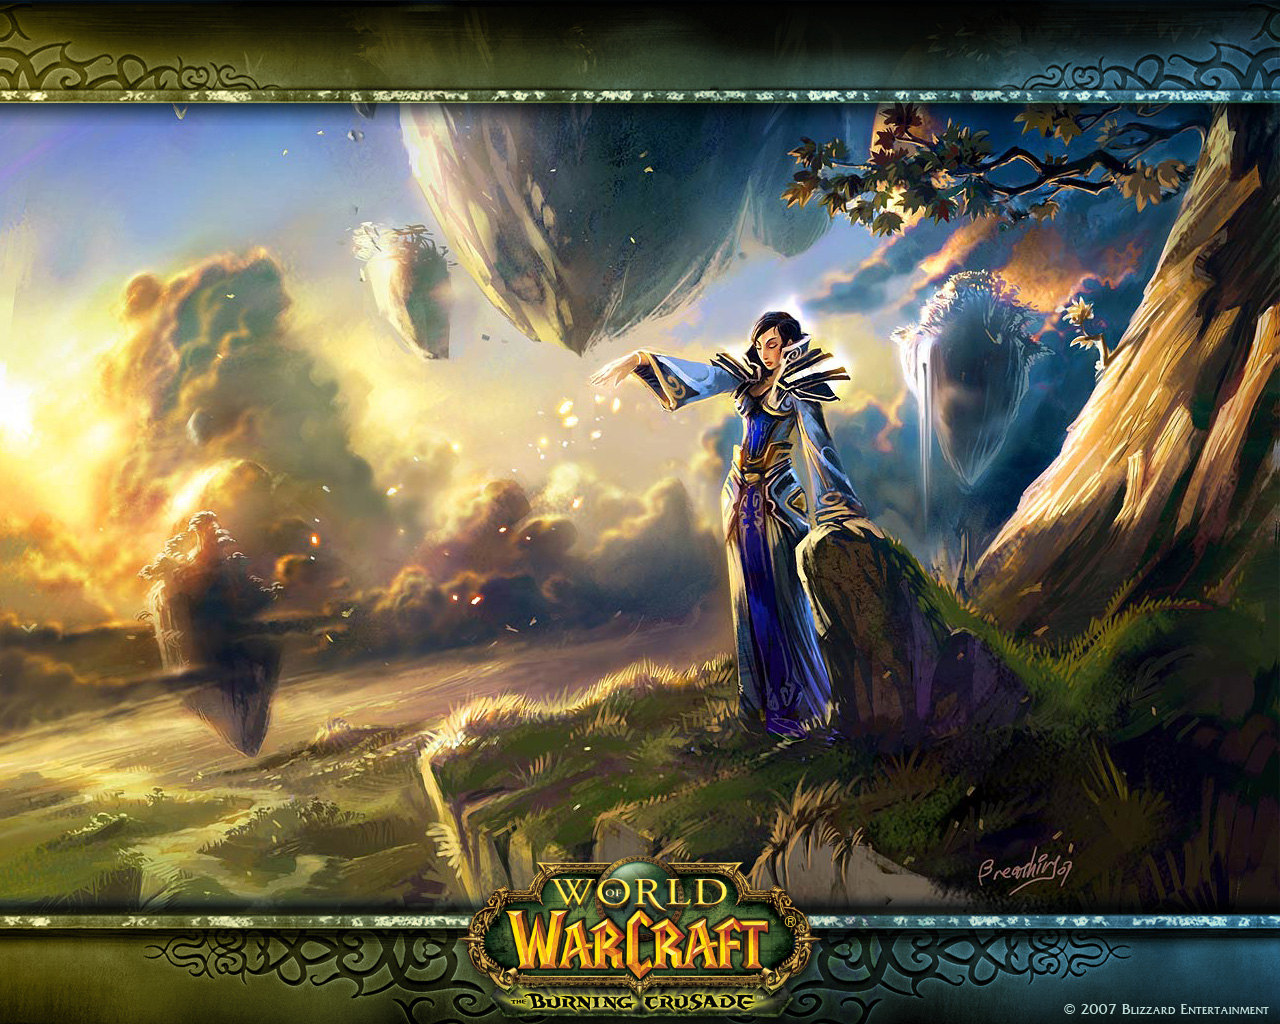 Game News: Blizzard signs Duncan Jones to direct Warcraft